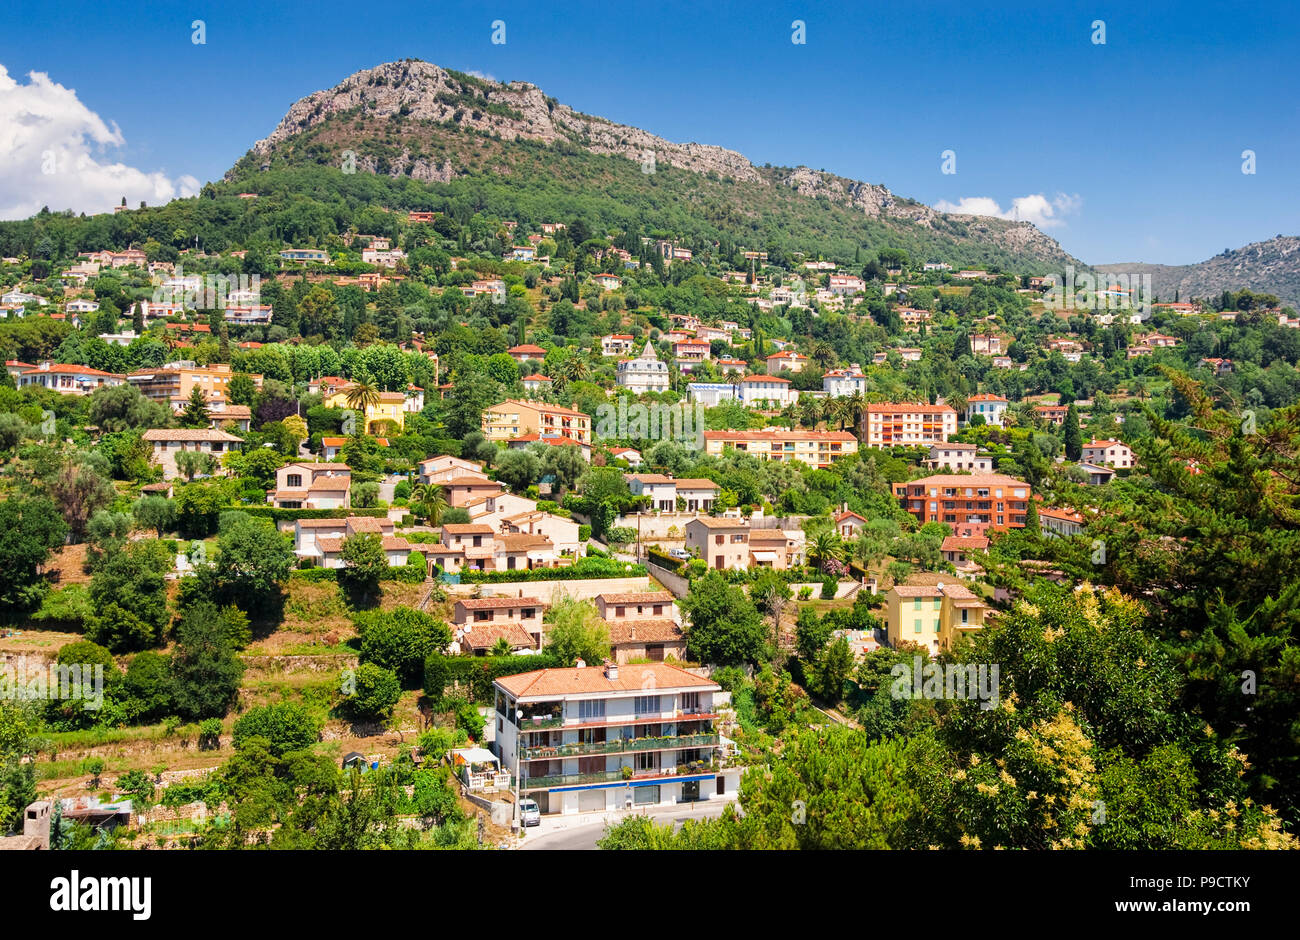 Luxury Houses Villas On The Hillside Overlooking The Old Town Of Vence,  Provence, South Of France, Europe